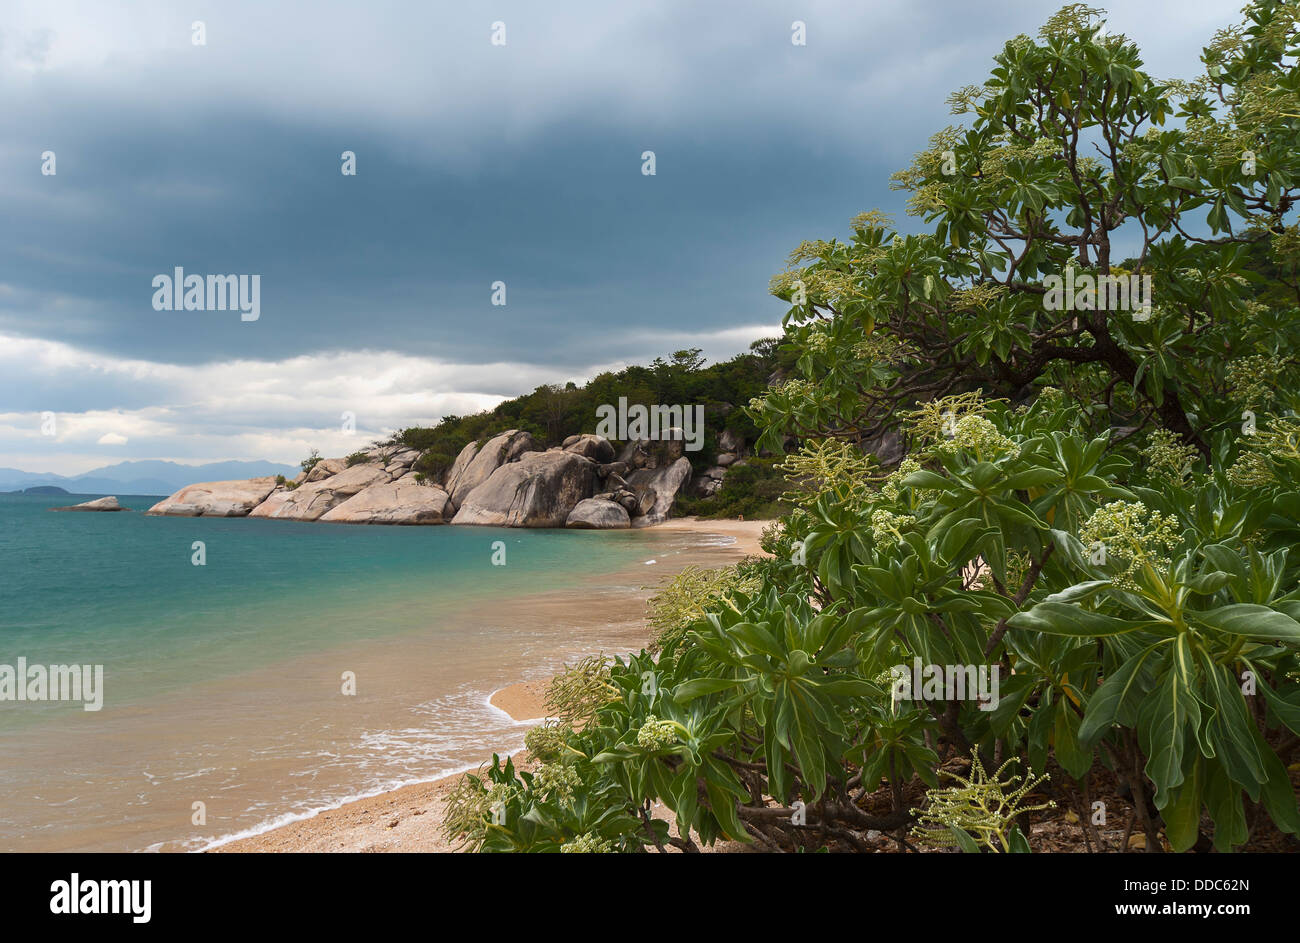 Storms gather over a tropical paradise beach. - Stock Image